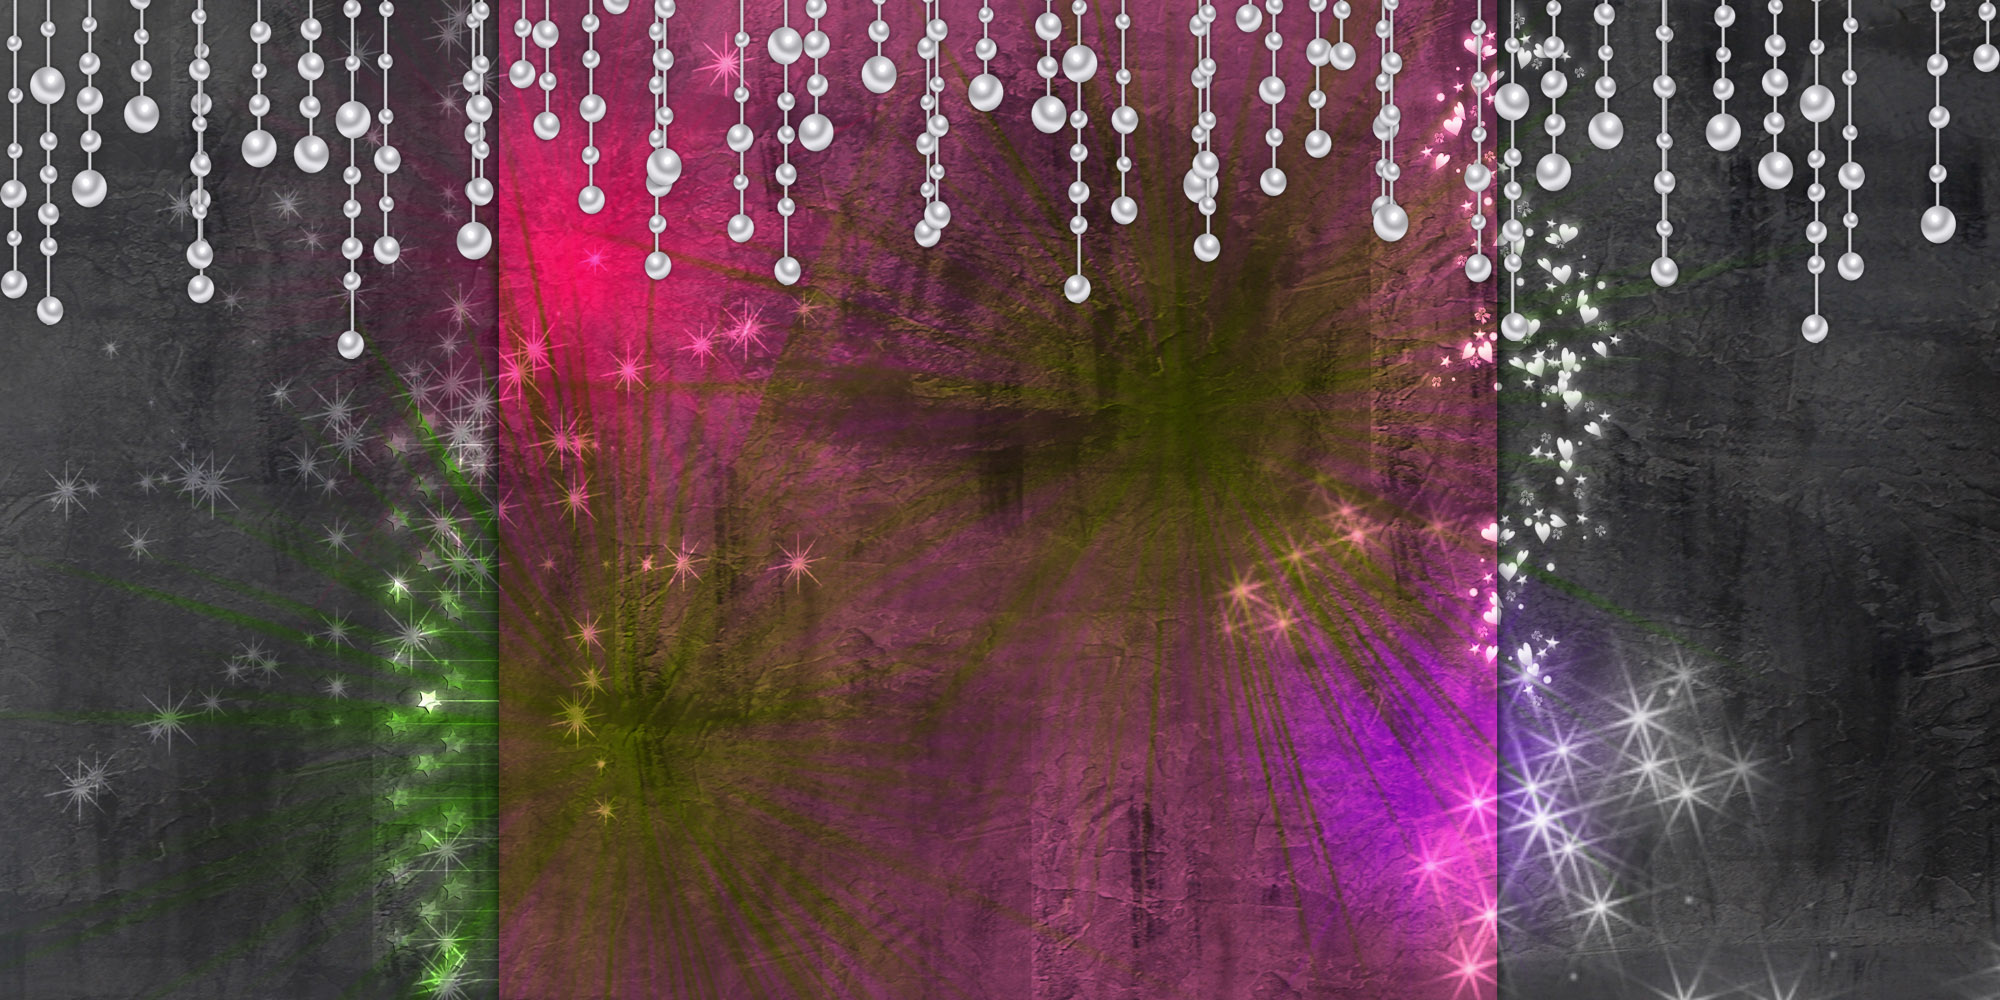 Free Girly Girl Wallpapers Pink Blog Background Bling Background The Cutest Blog